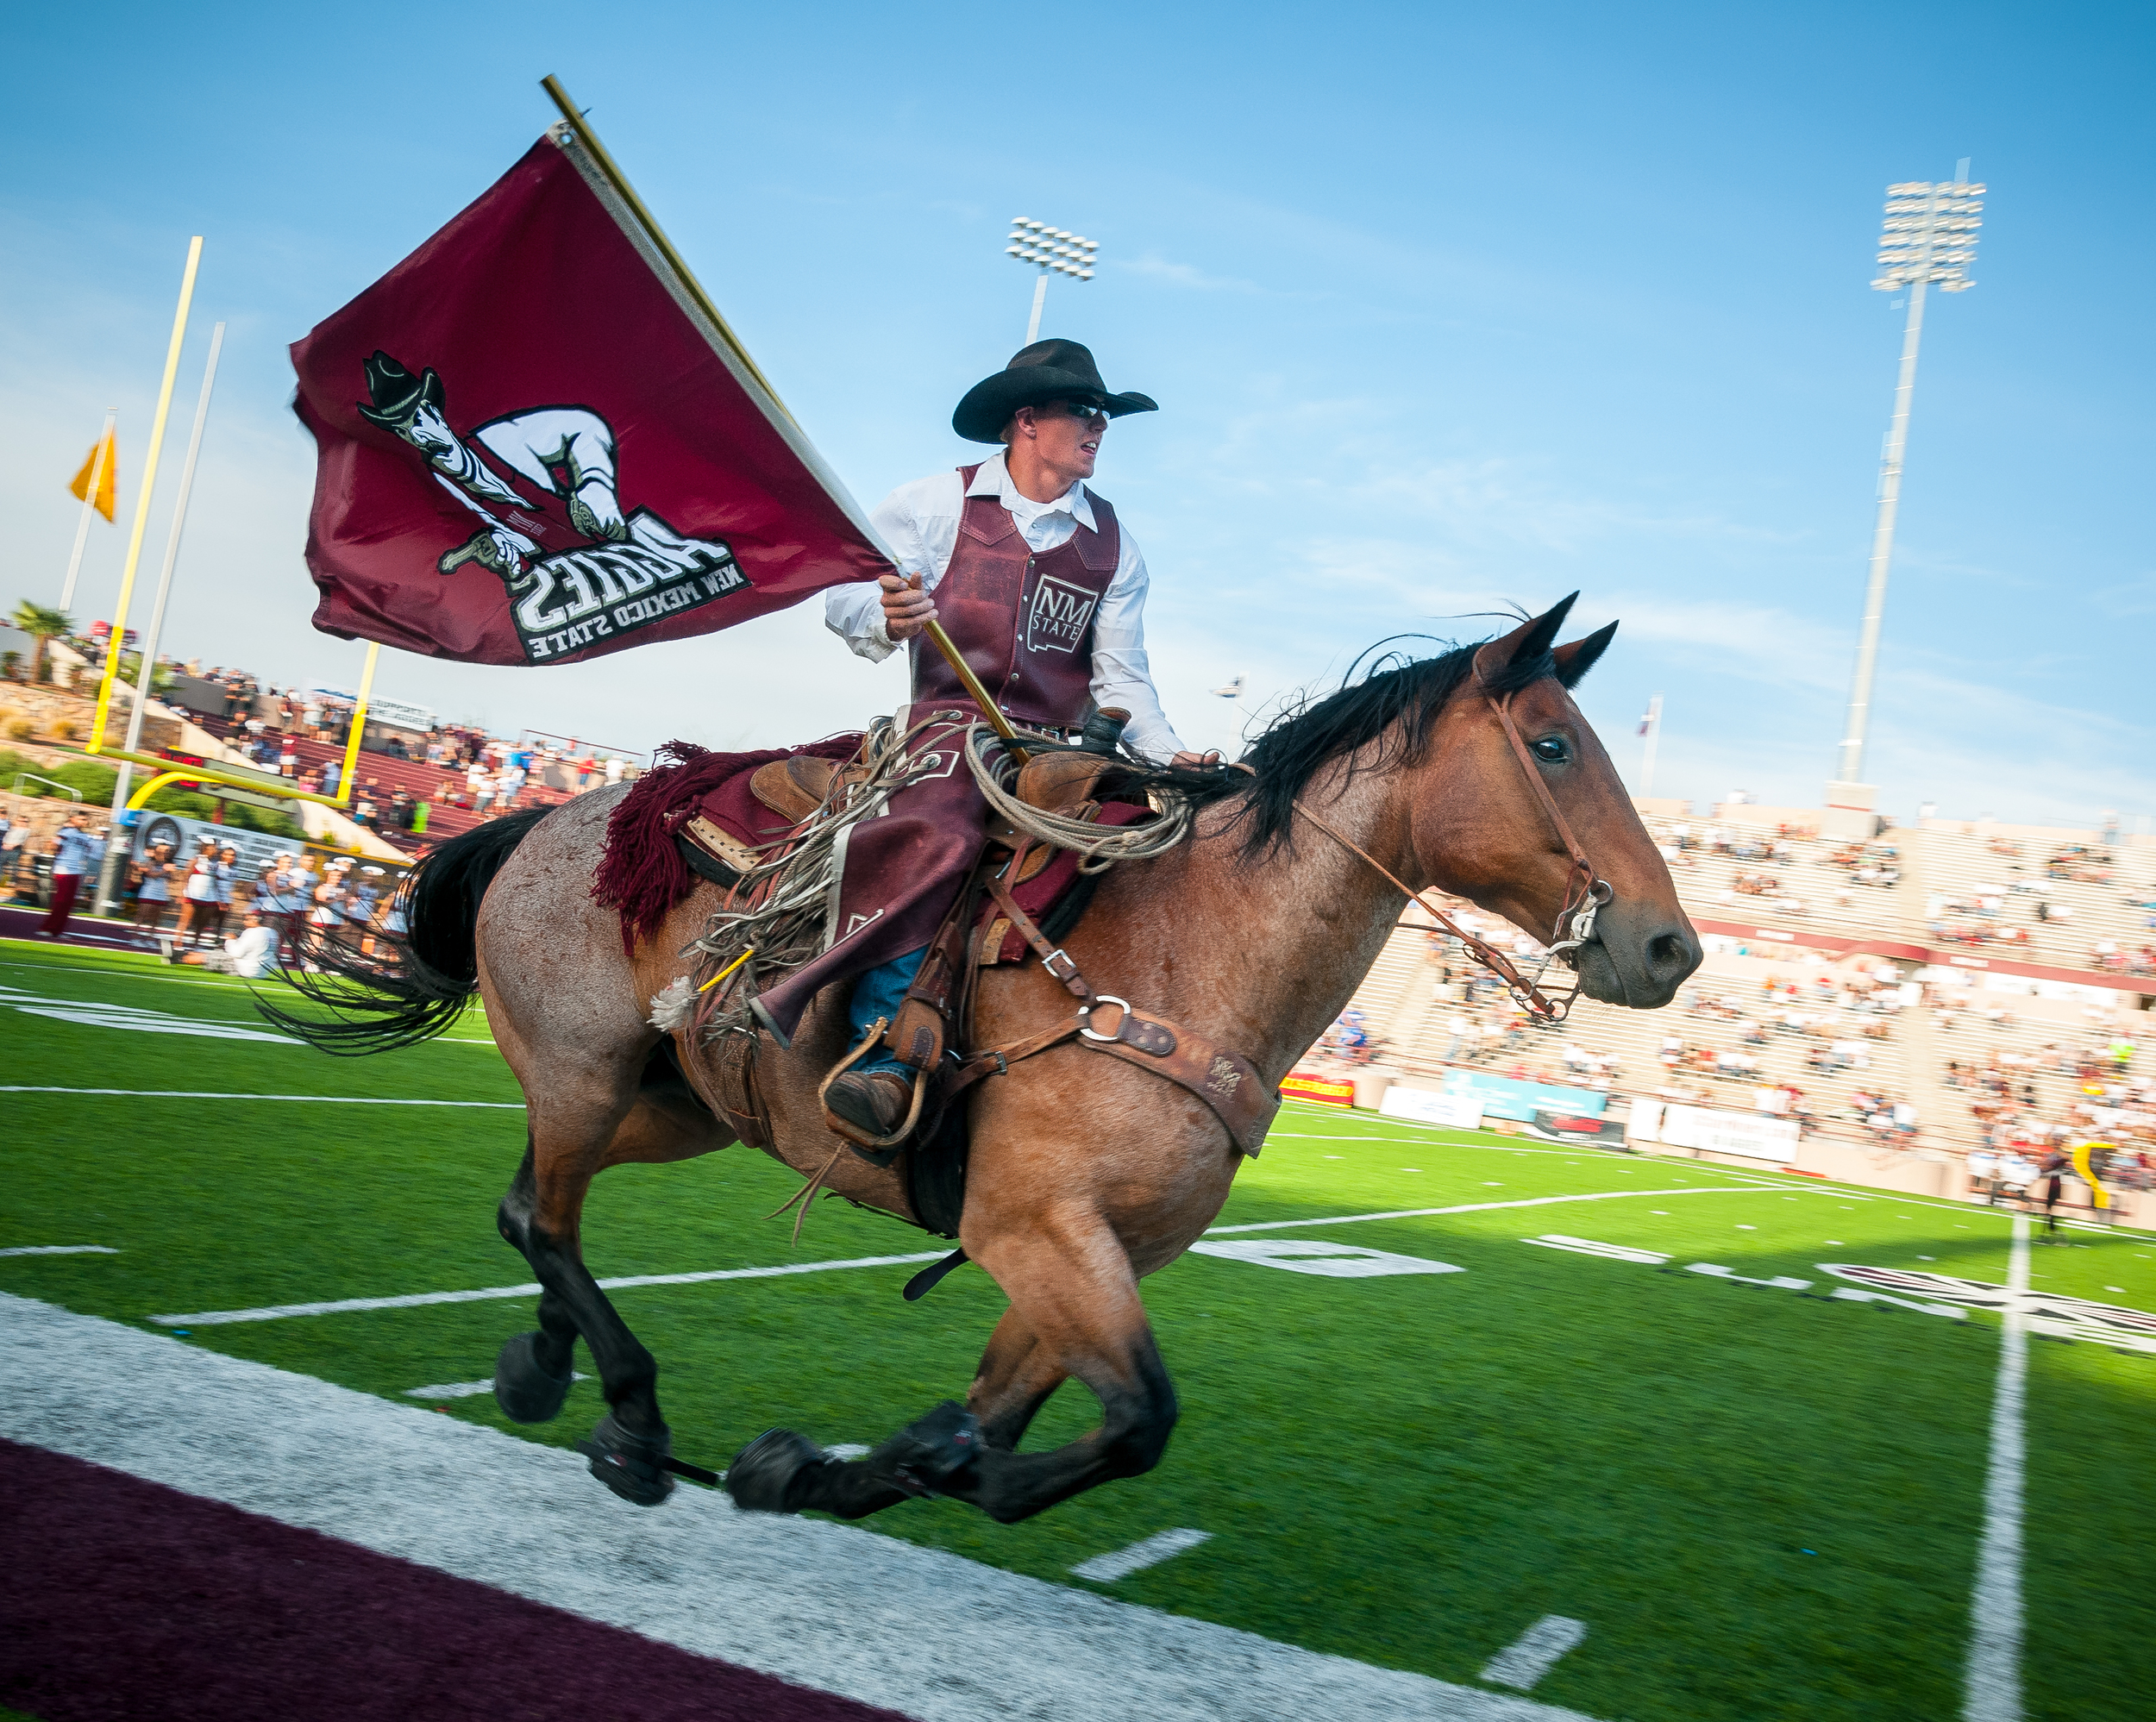 NMSU mascot Keystone does a lap around the field at Aggie Memorial Stadium before the Aggies versus Georgia State Panthers game.